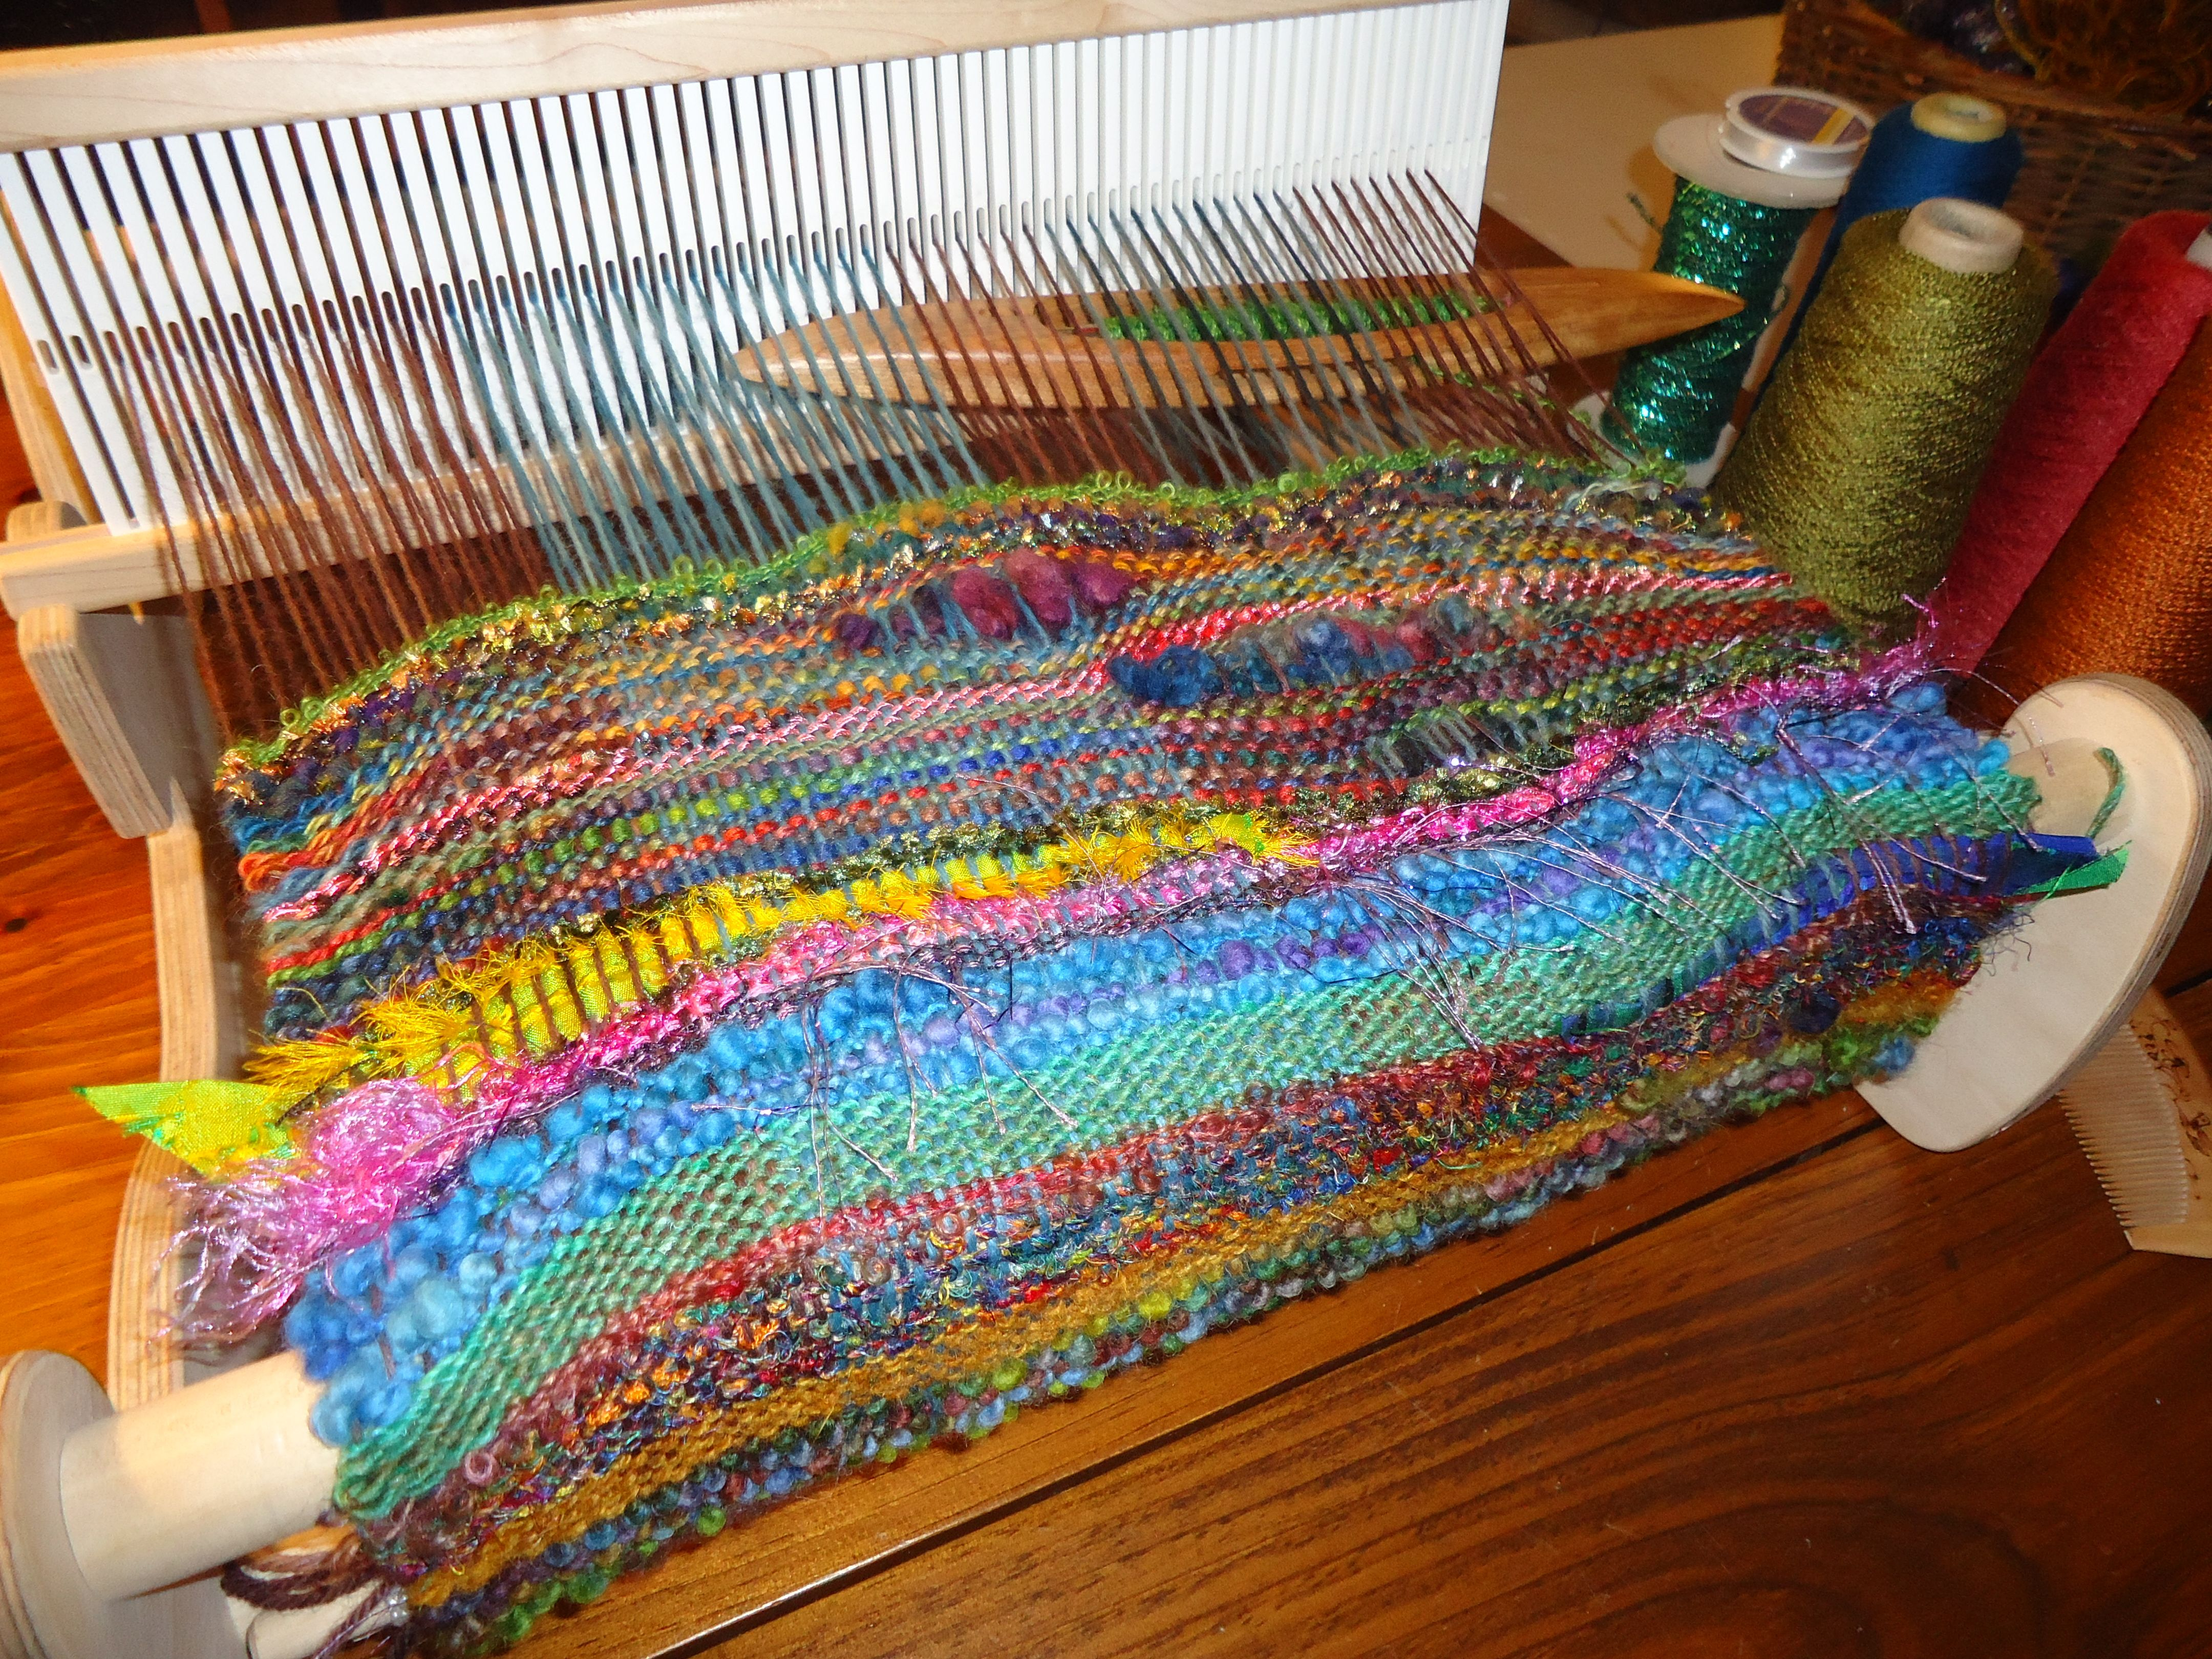 Saori Weaving On The Cricket Loom Plain Weave Using A Comb Instead Of The Beater To Make Waves Saori Weaving Rigid Heddle Weaving Loom Weaving